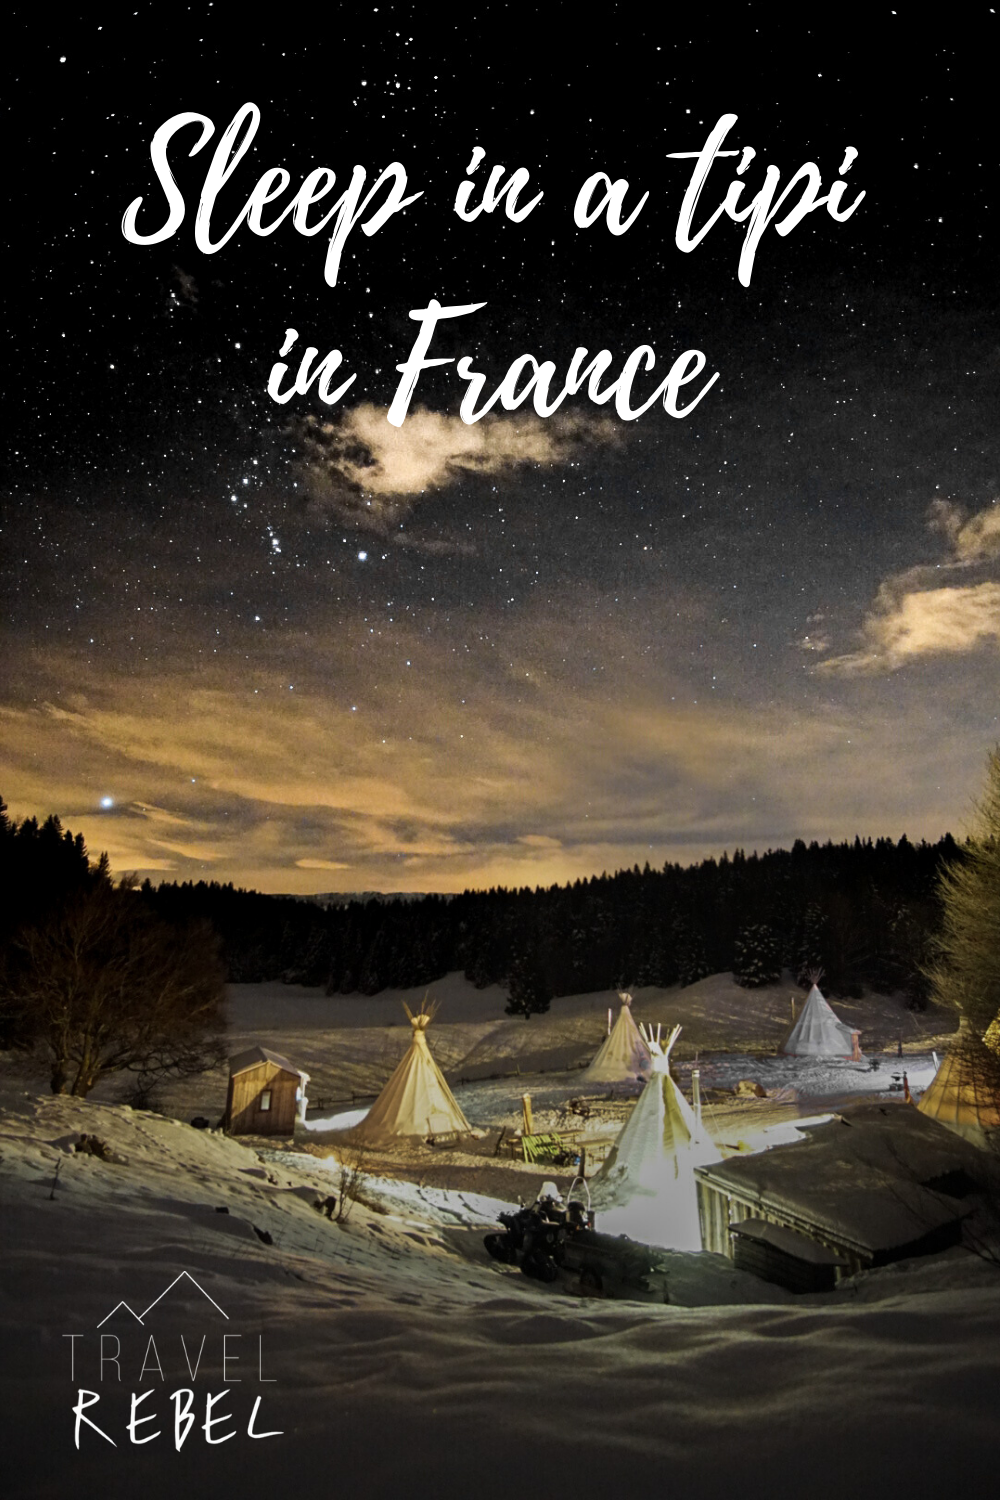 sleep in a tipi in France during winter